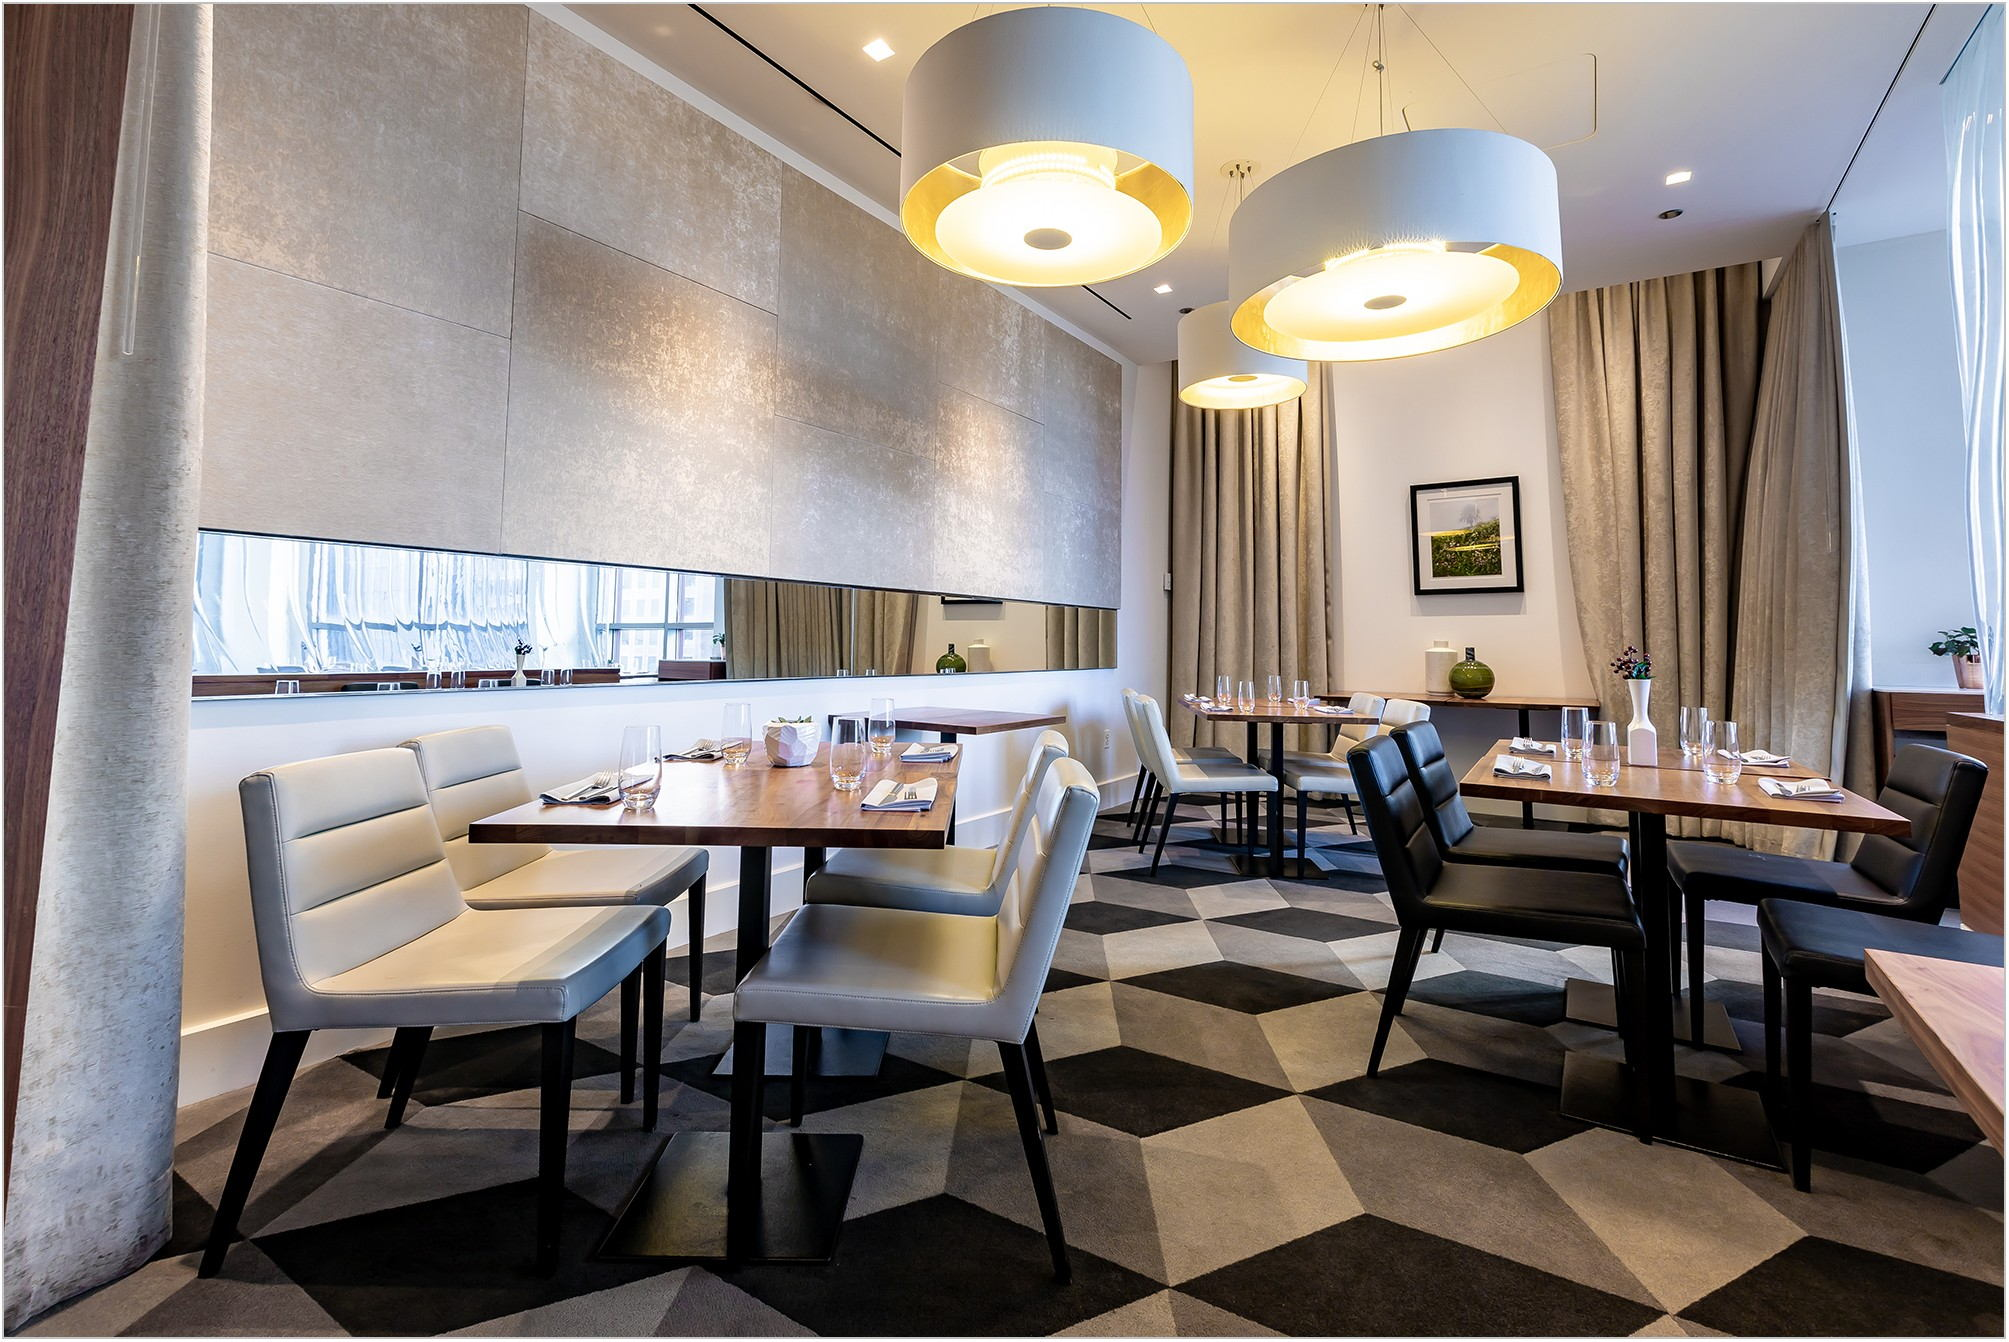 Best Private Dining Rooms In Chicago 2019